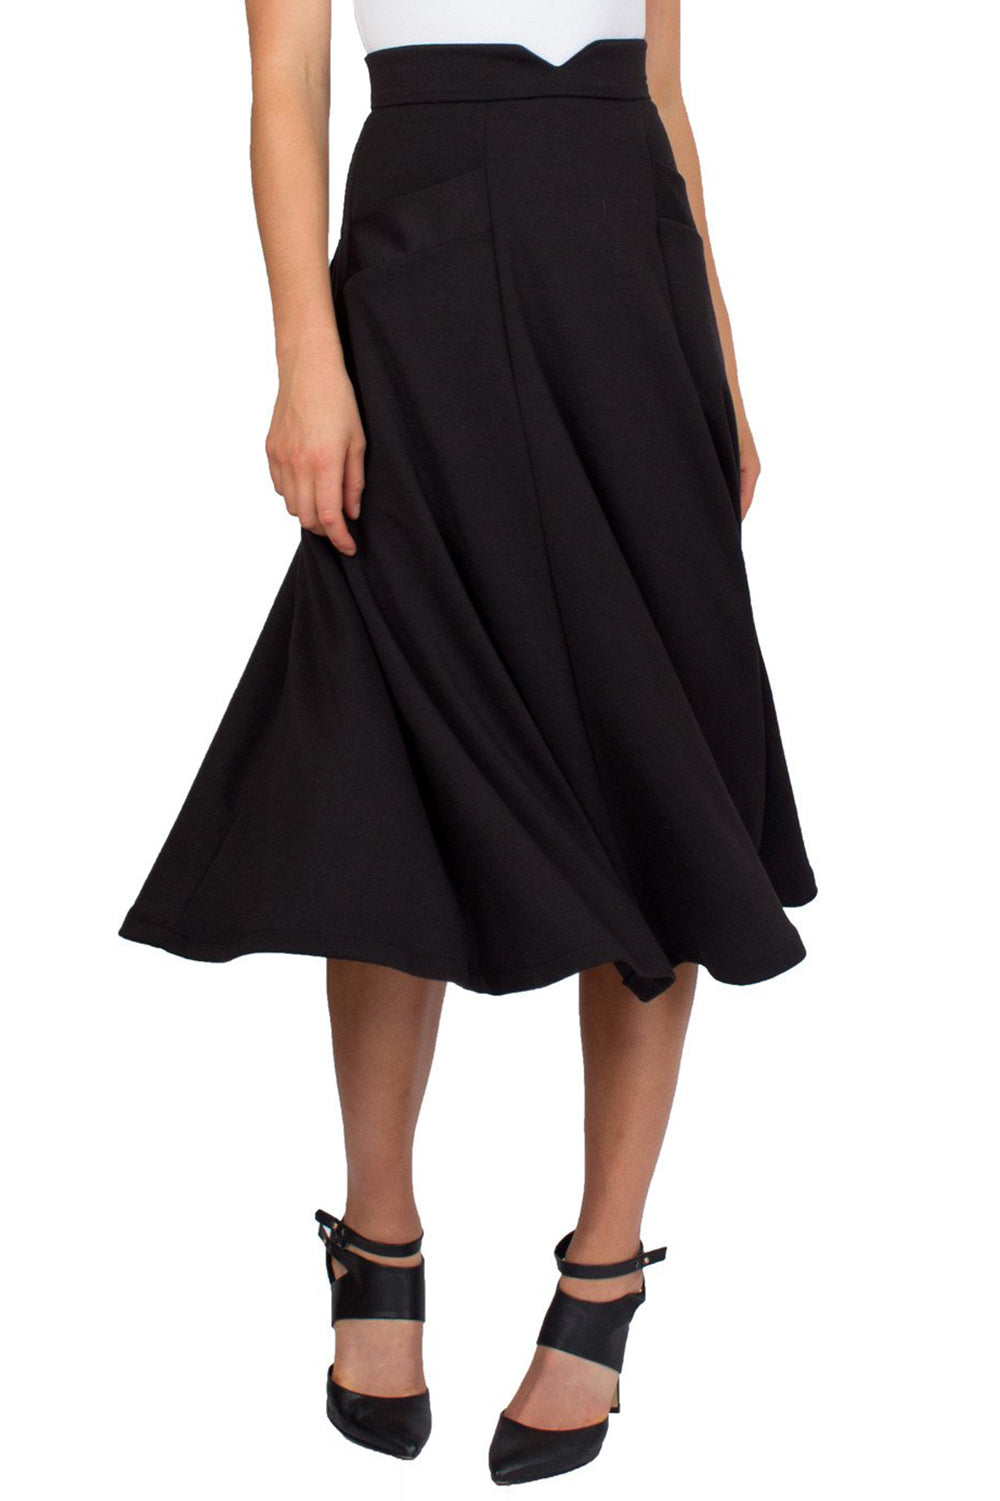 Black Swing Midi Skirt With Slant Pockets and Notch Detail on Waist